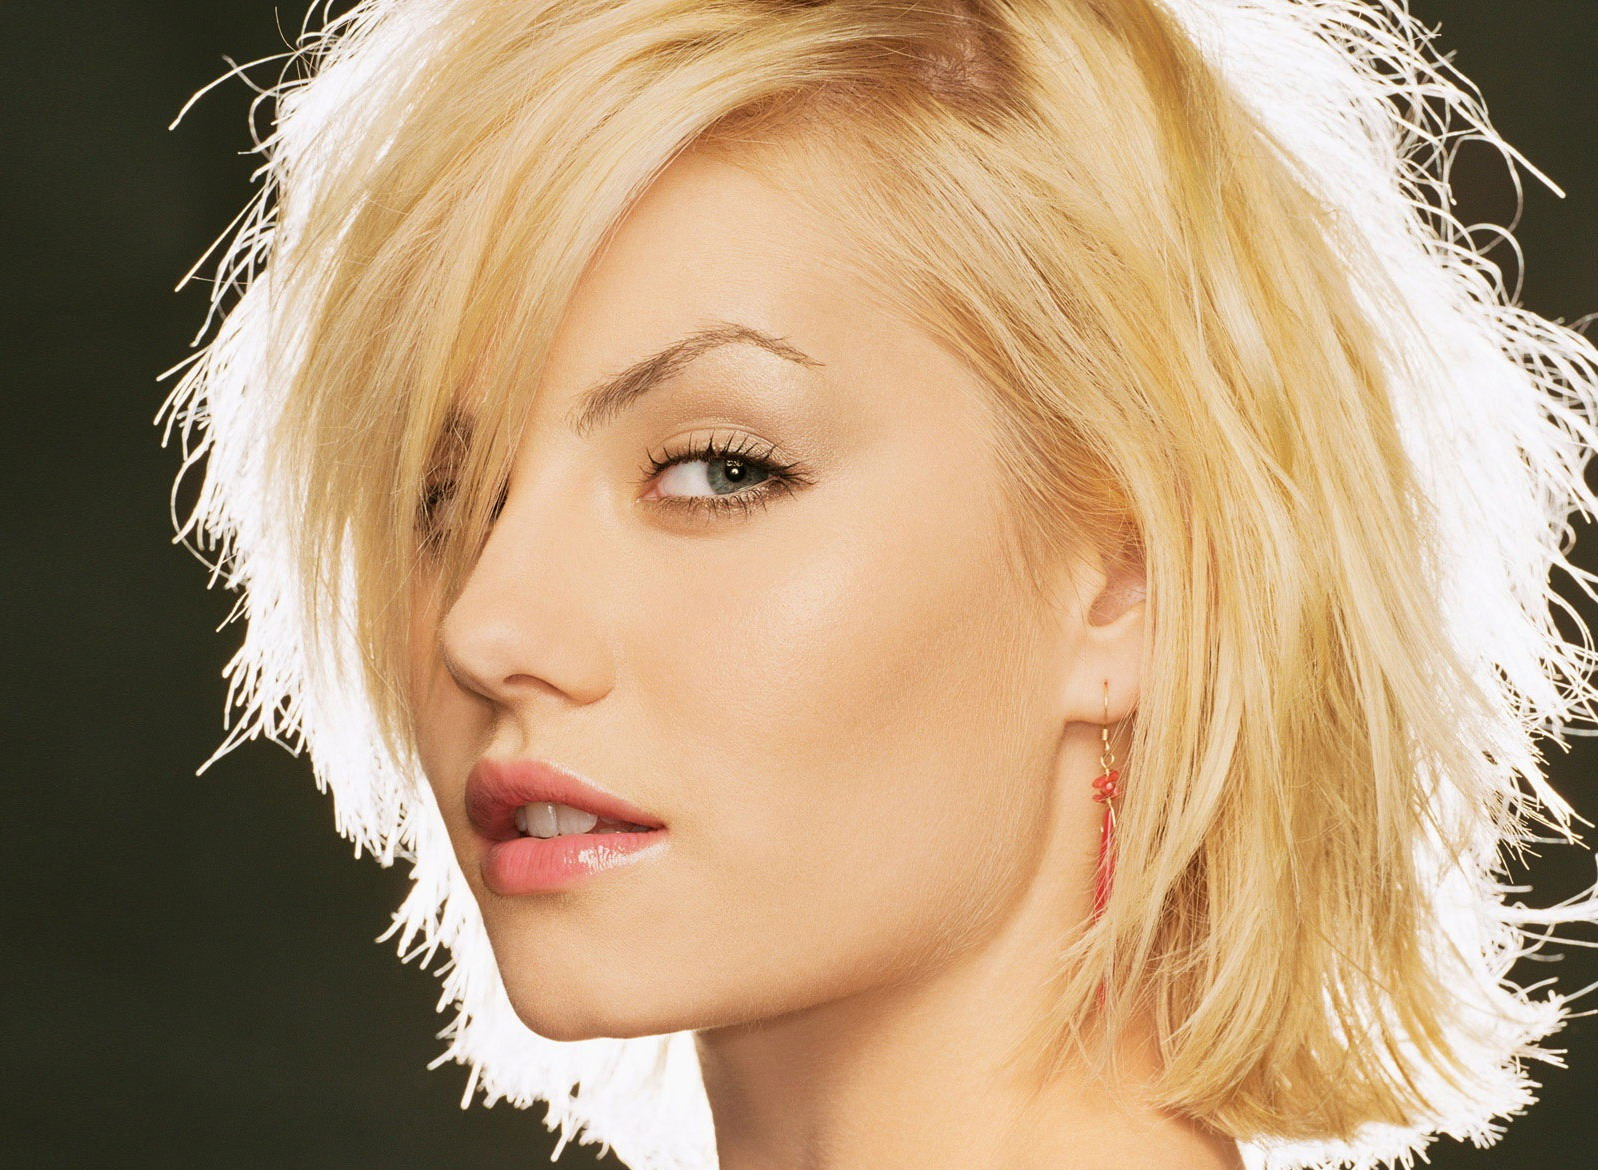 Images Elisha Cuthbert Celebrities